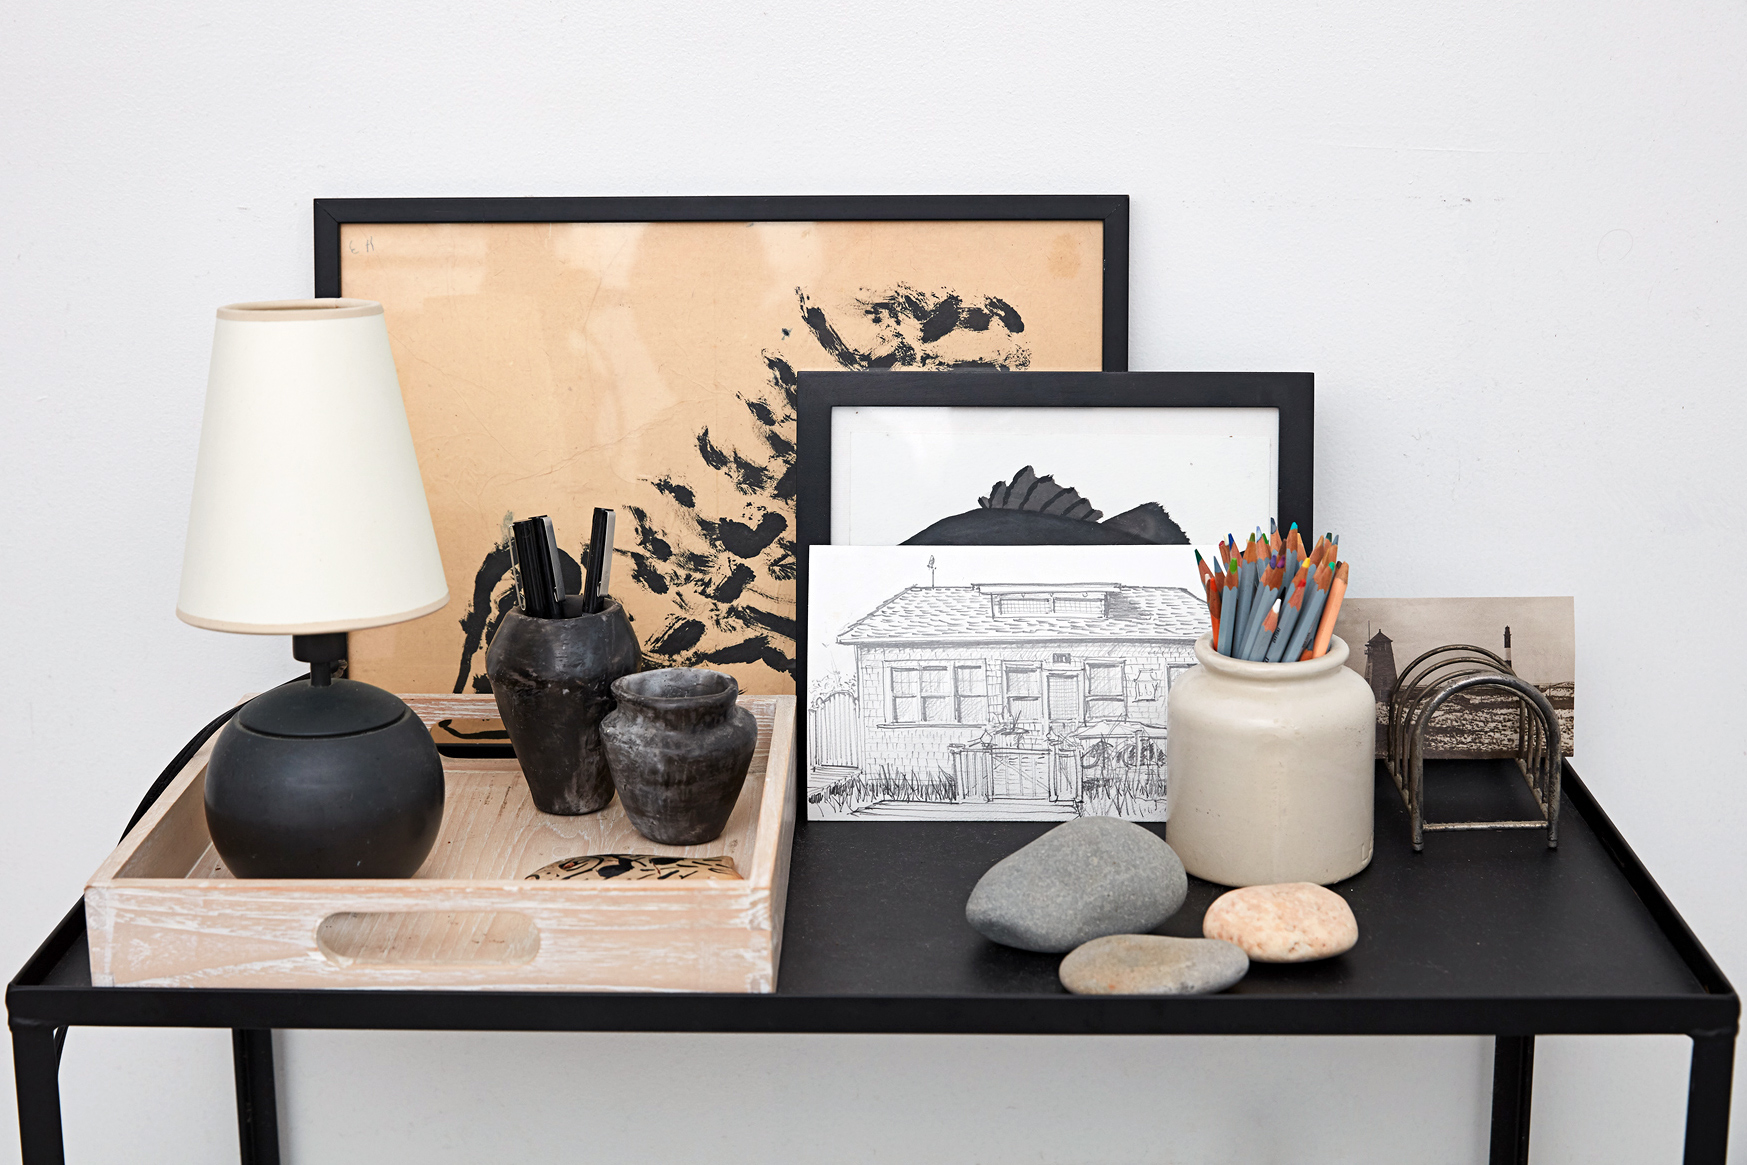 black table displaying pottery artwork and stones